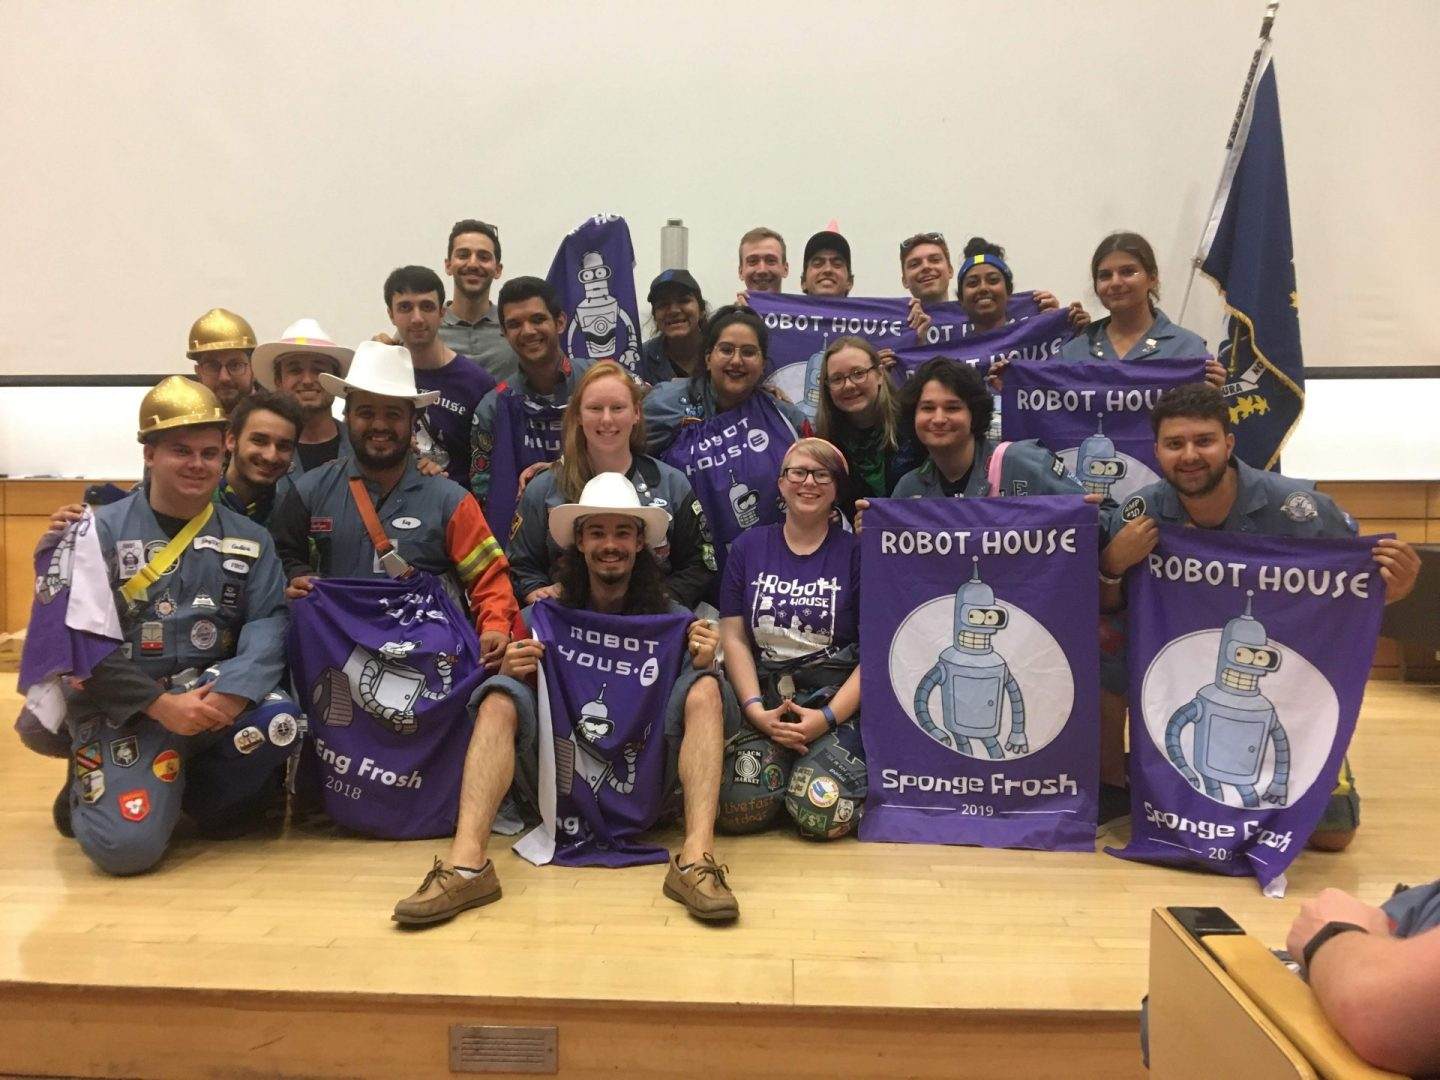 Frosh leaders holding purple banners that read Robot House